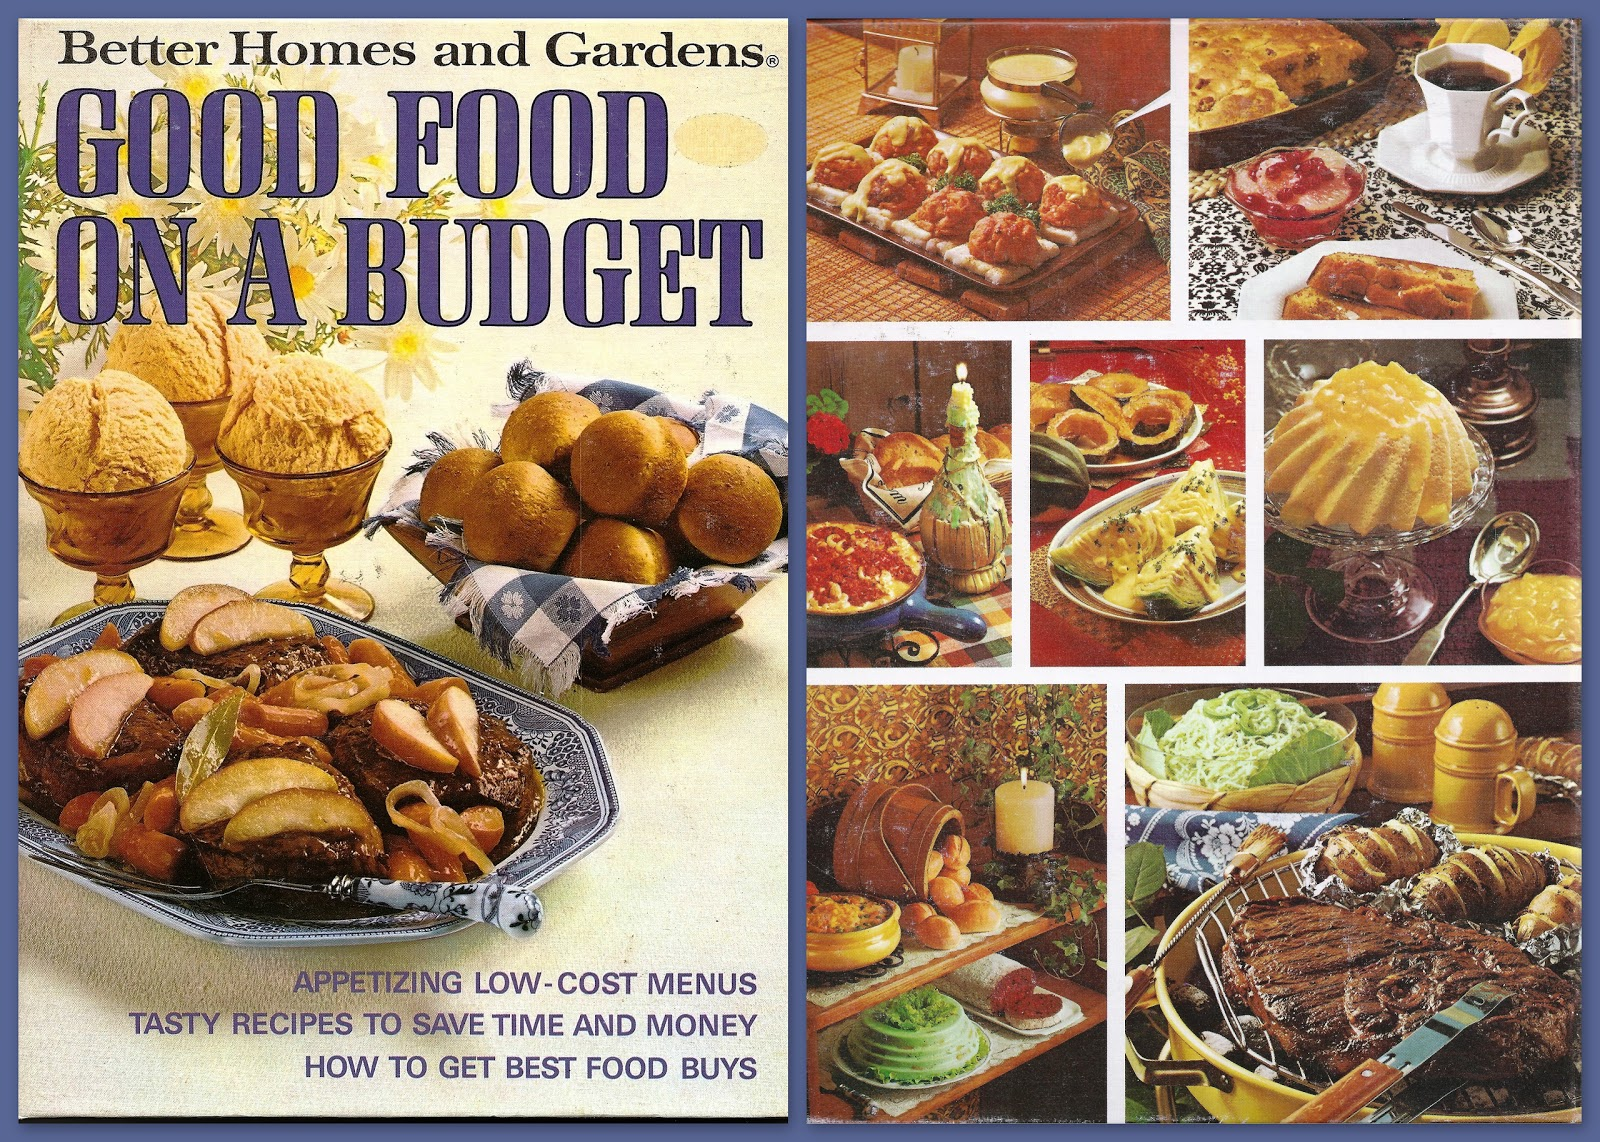 The Iowa Housewife: Better Homes and Garden\'s Good Food on a Budget